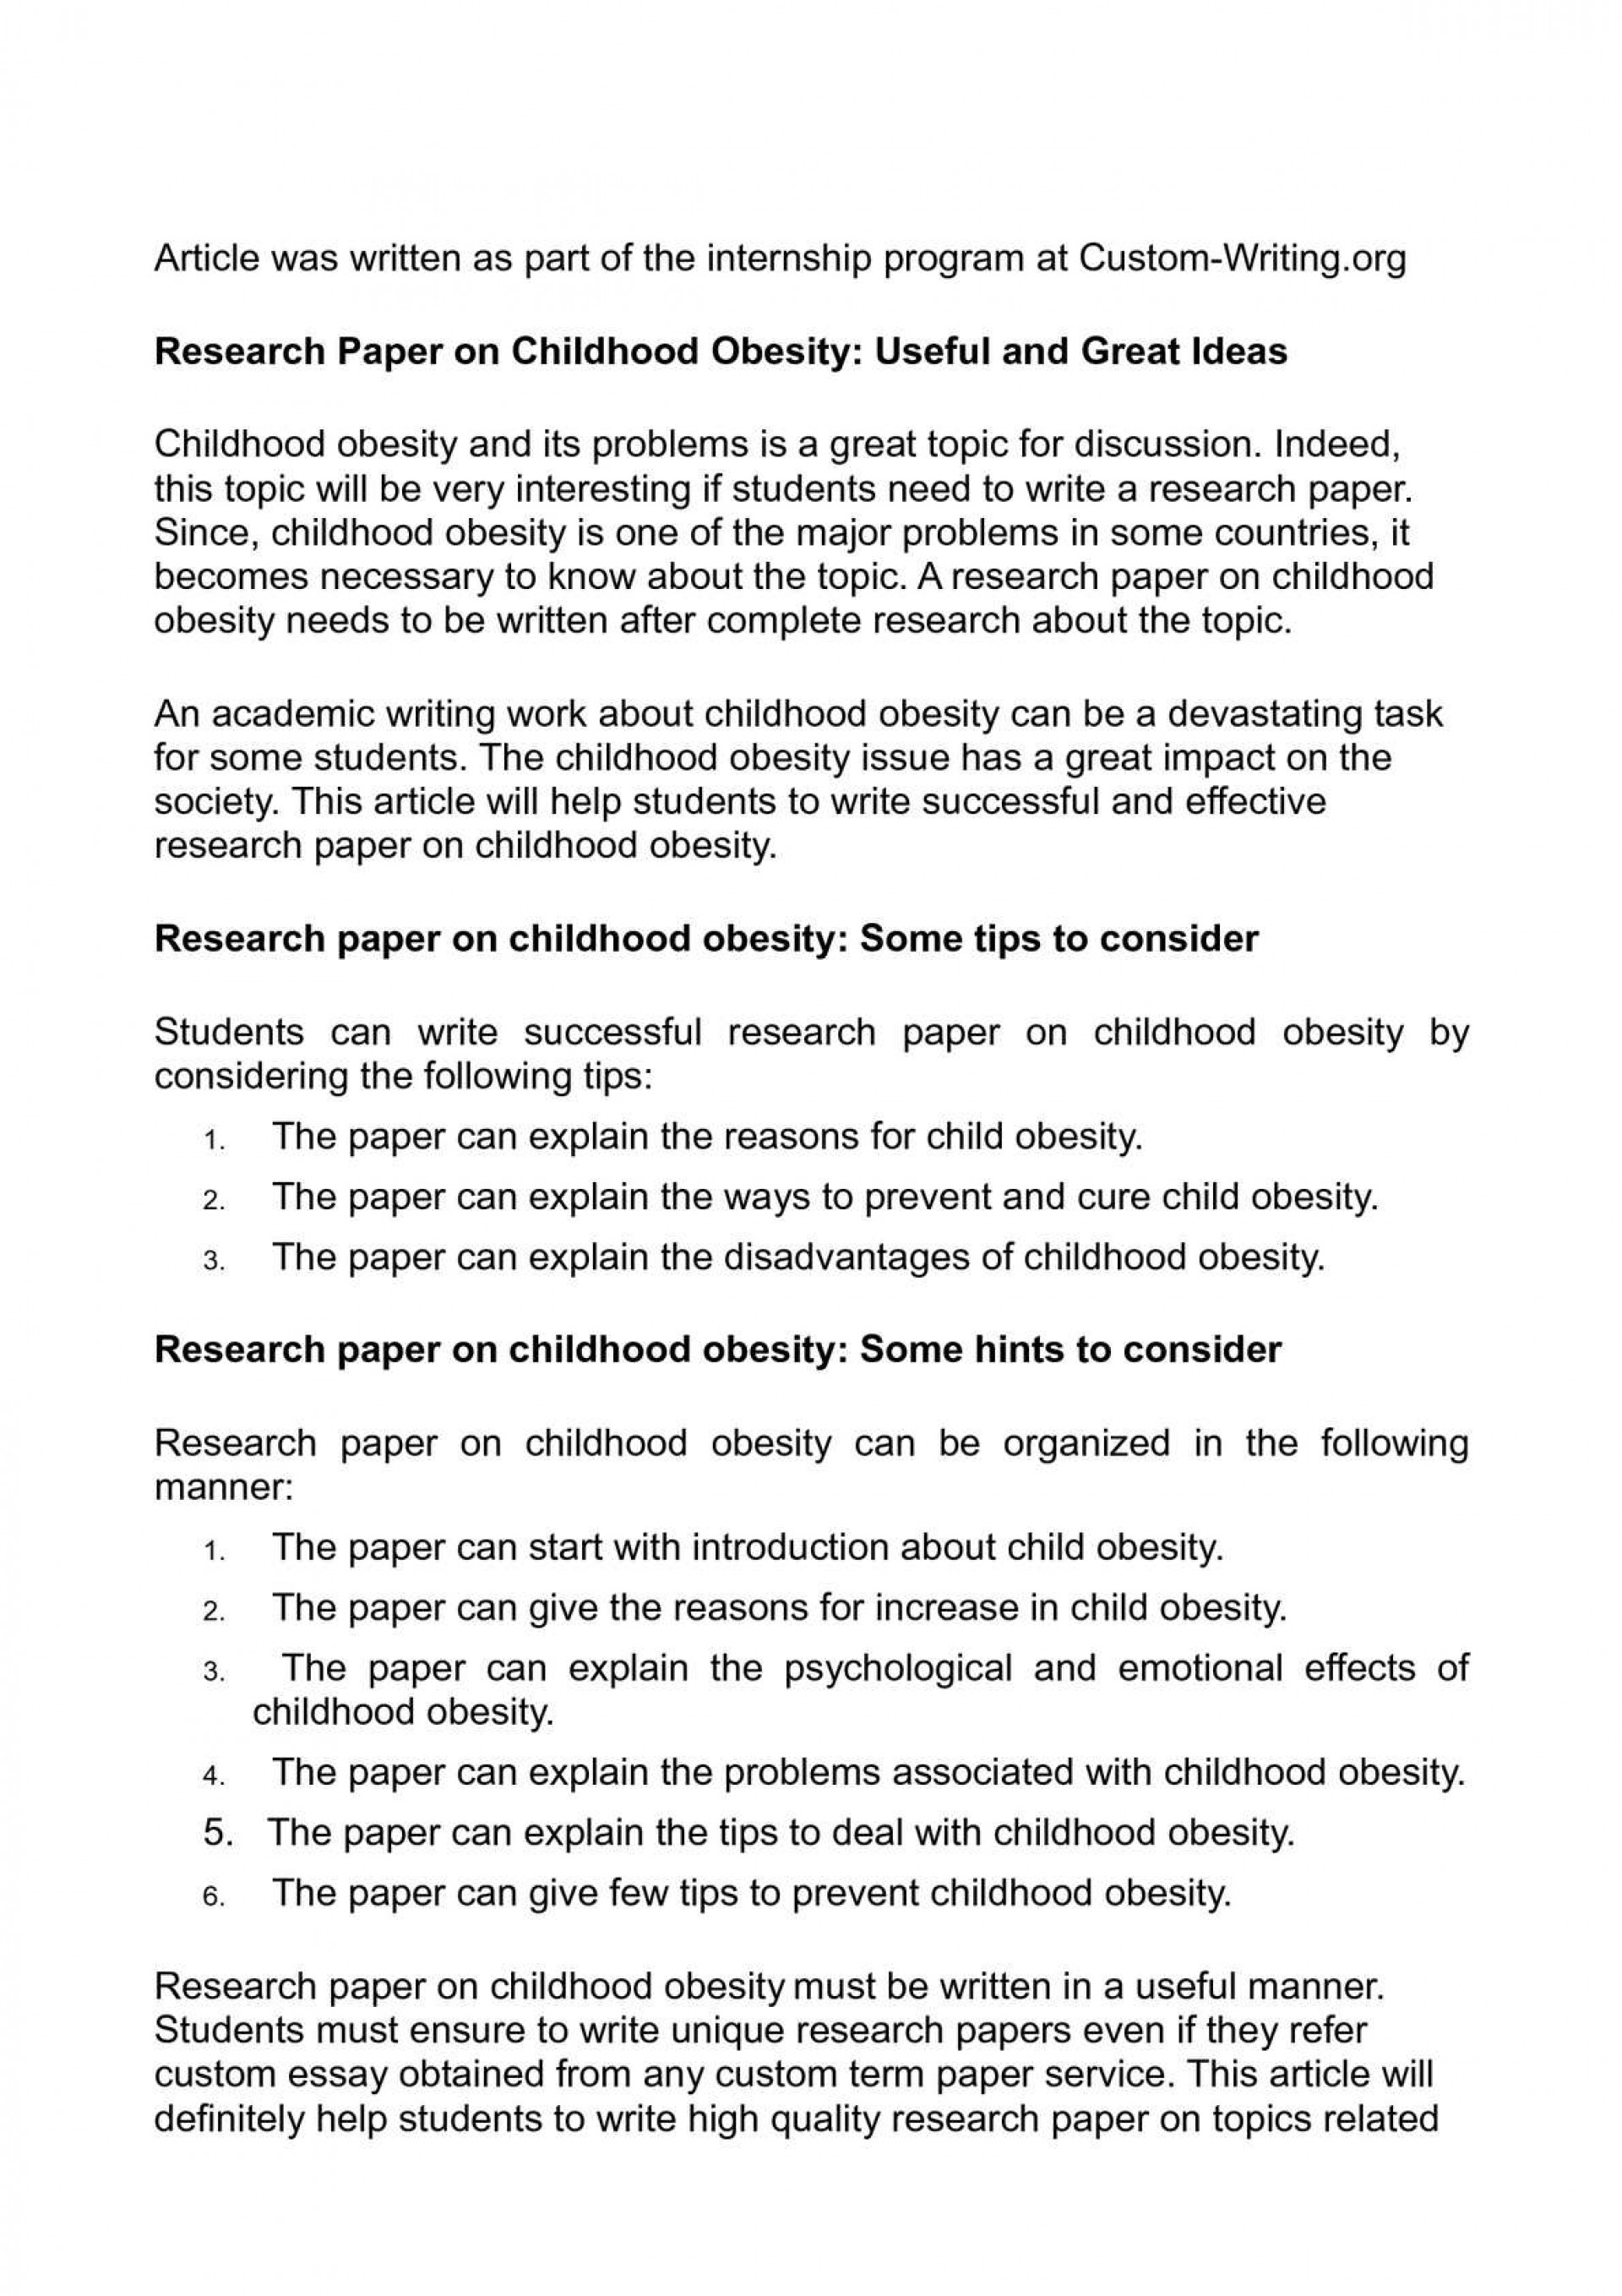 002 P1 Childhood Obesity Research Paper Amazing Thesis Statement 1920